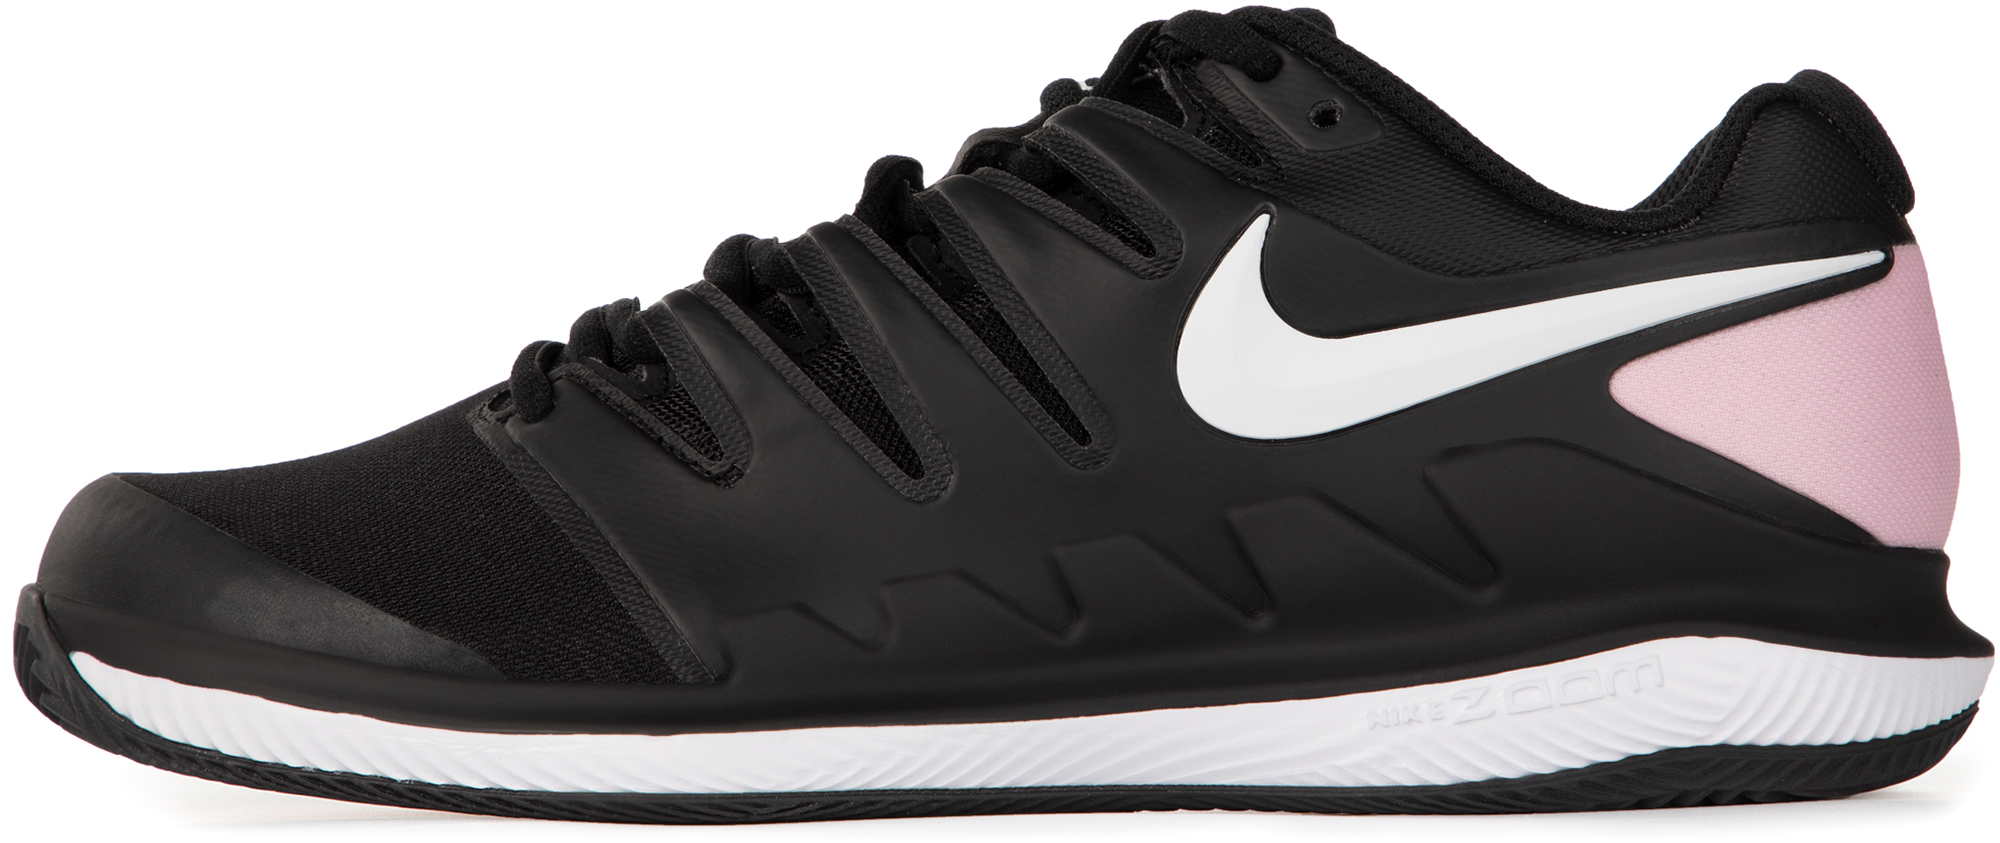 Nike Кроссовки женские Nike Air Zoom Vapor X Clay, размер 37 nike кроссовки женские nike zoom cage 3 размер 41